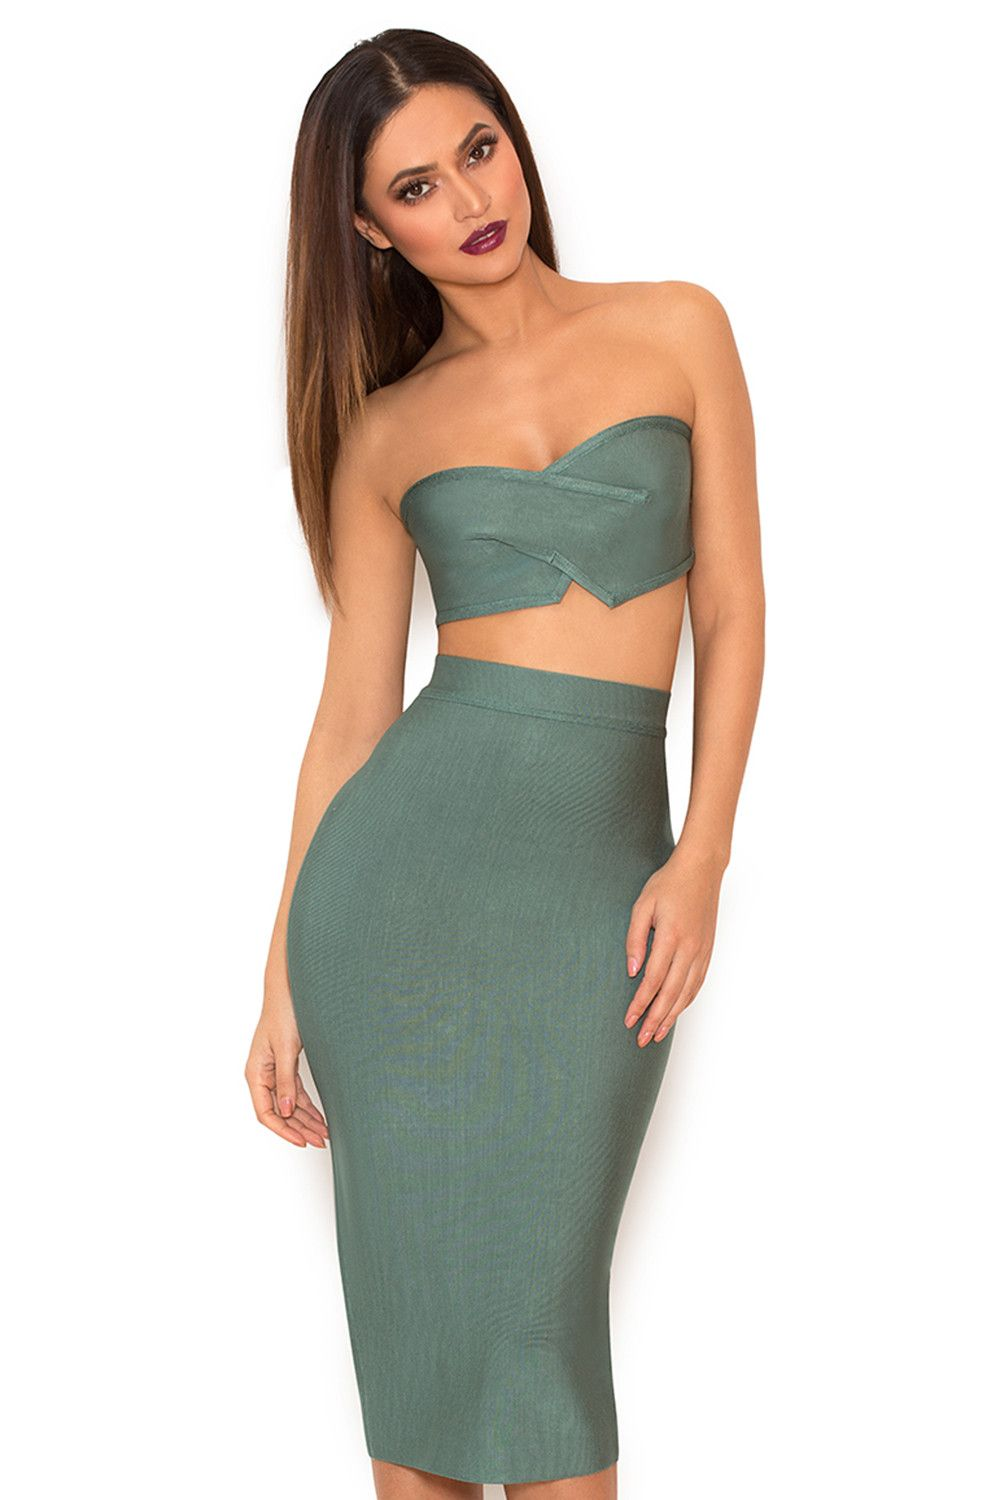 ed0e117ae5d7 Clothing : 2 Pieces : 'Suiza' Teal Bandage Two Piece Bustier Set ...